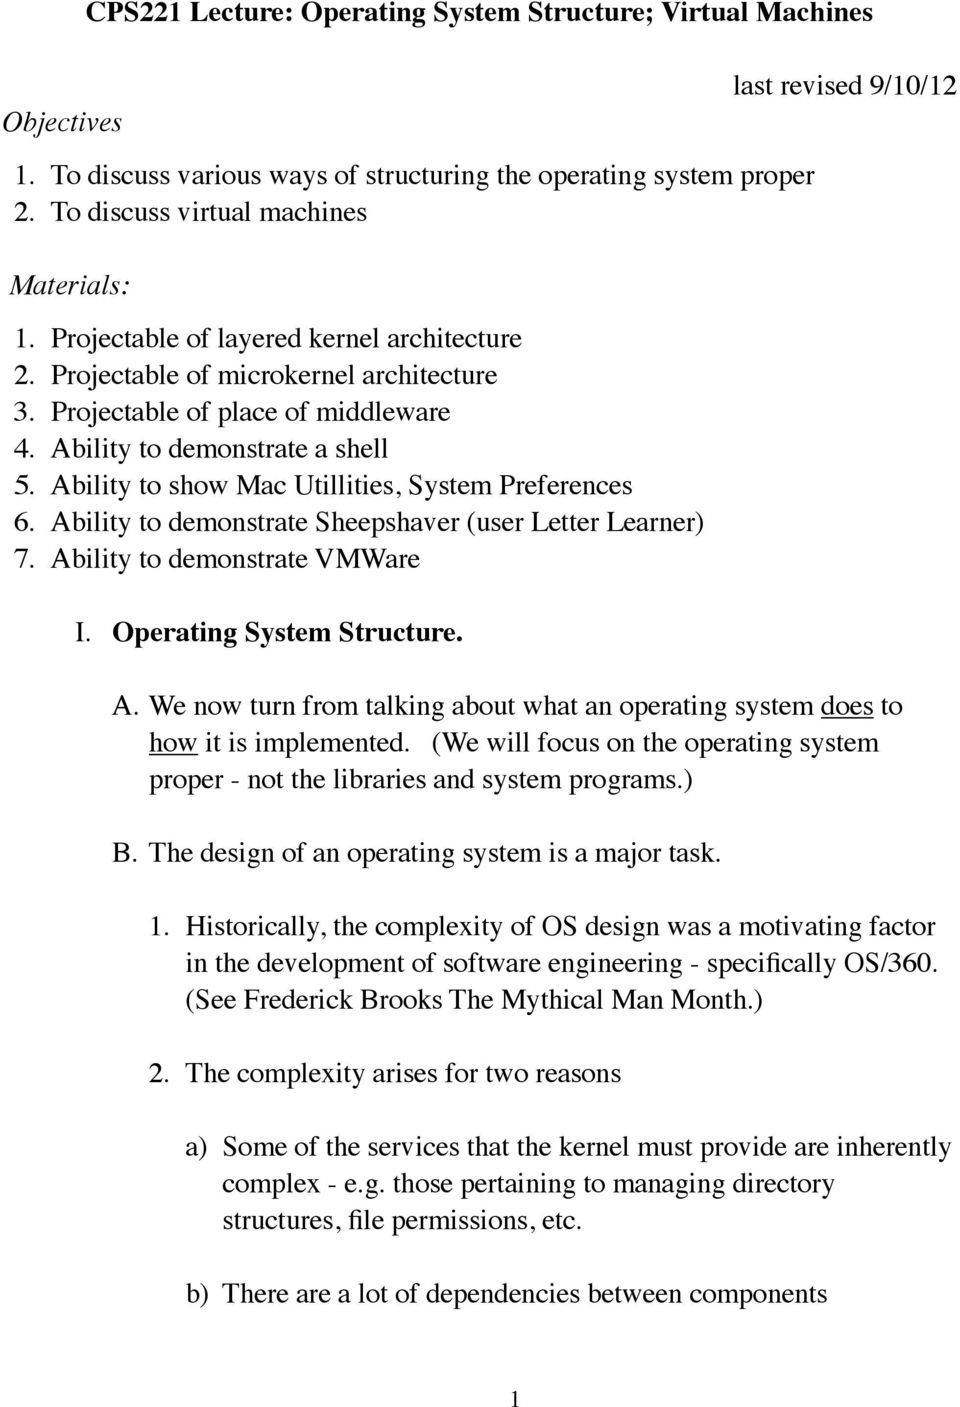 Ability to show Mac Utillities, System Preferences 6. Ability to demonstrate Sheepshaver (user Letter Learner) 7. Ability to demonstrate VMWare I. Operating System Structure. last revised 9/10/12 A.